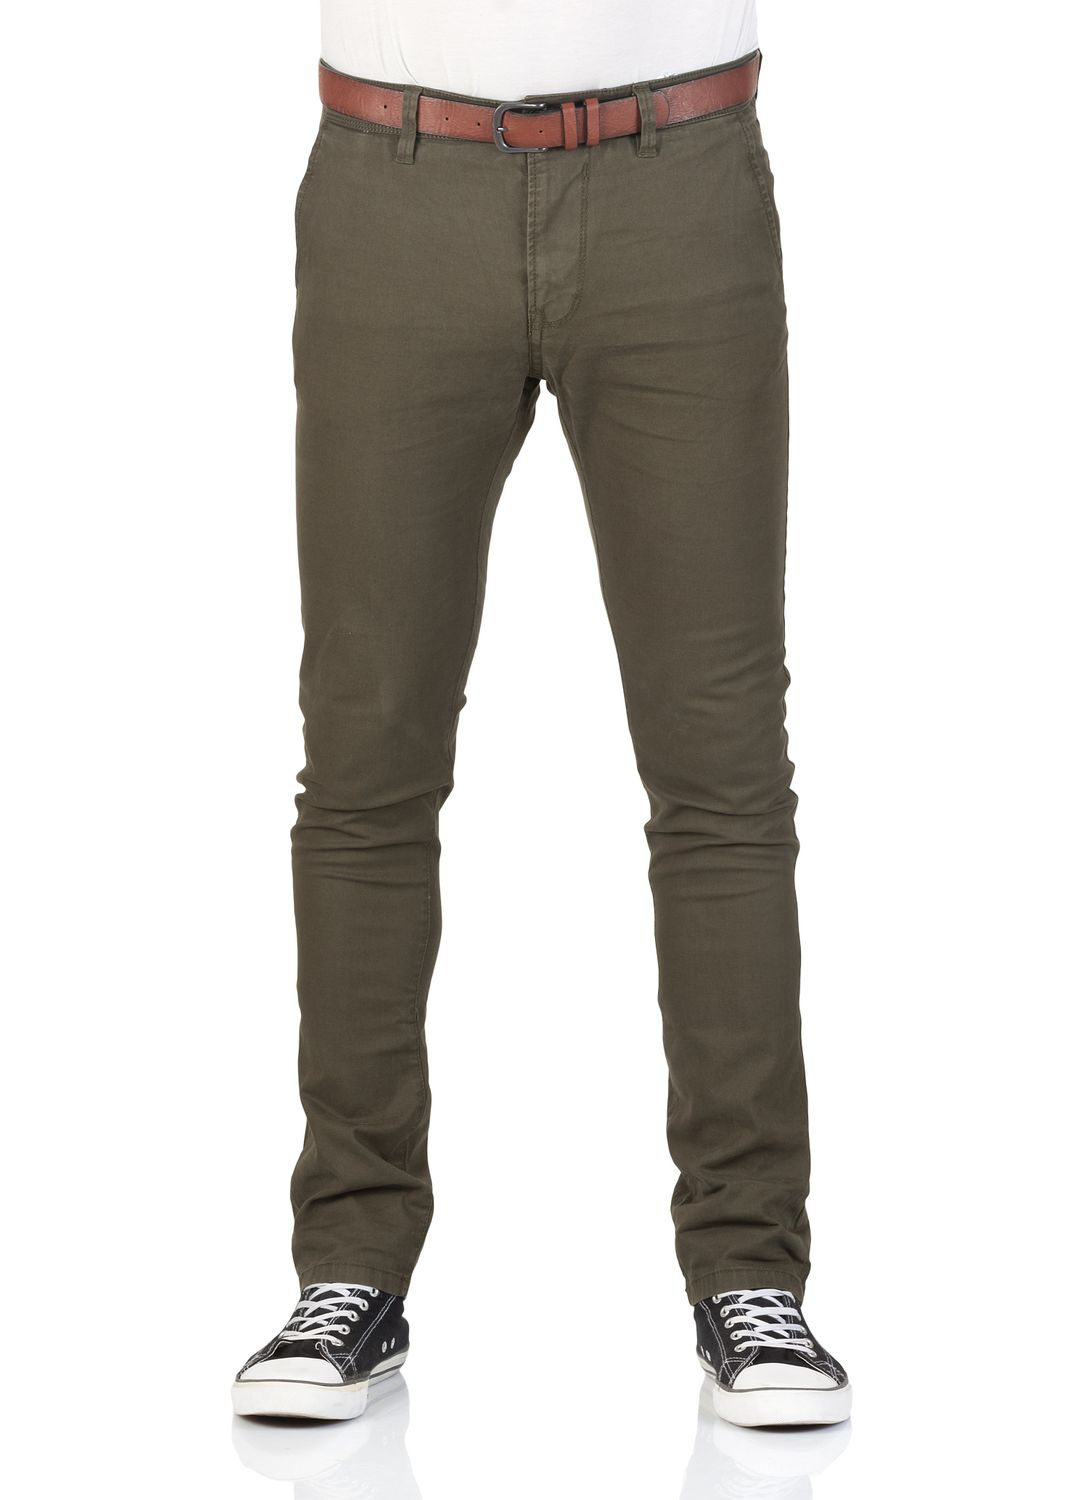 31d7969f832e Tom Tailor Denim Herren Chino Hose - Skinny Fit - Grün - Woodland Green